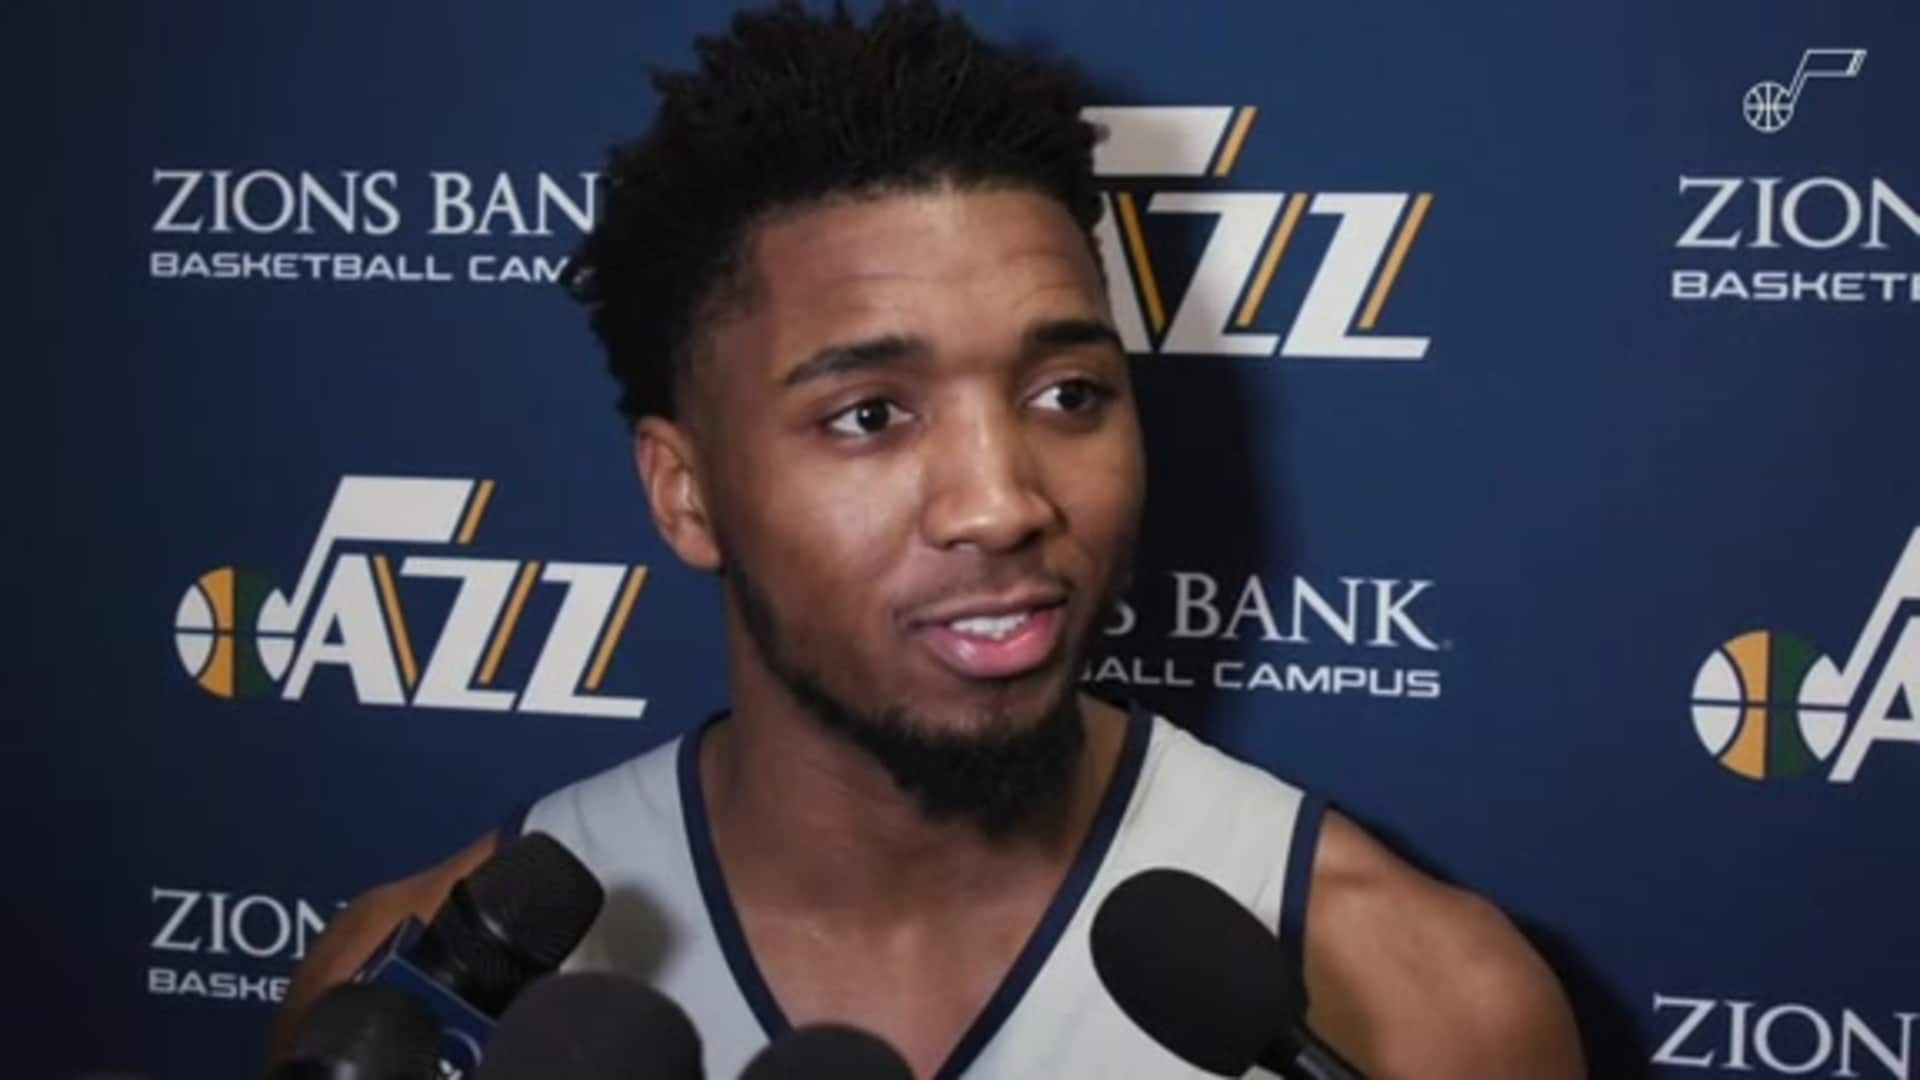 Shootaround Interviews: Donovan Mitchell reflects on Kobe's legacy